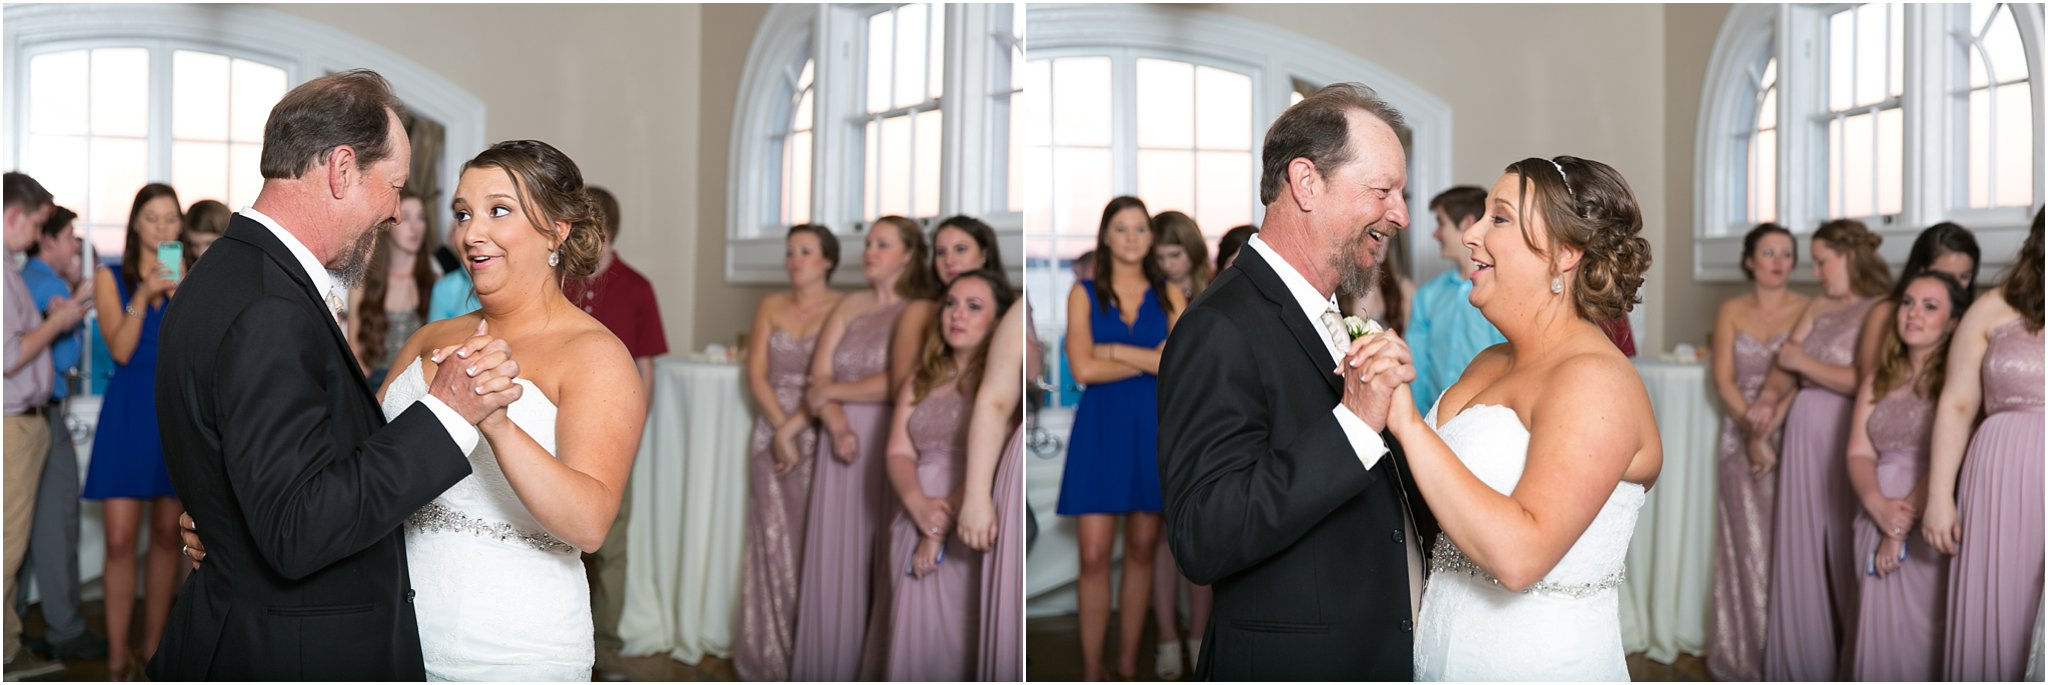 jessica_ryan_photography_wedding_suffolk_obici_house_wedding_0464